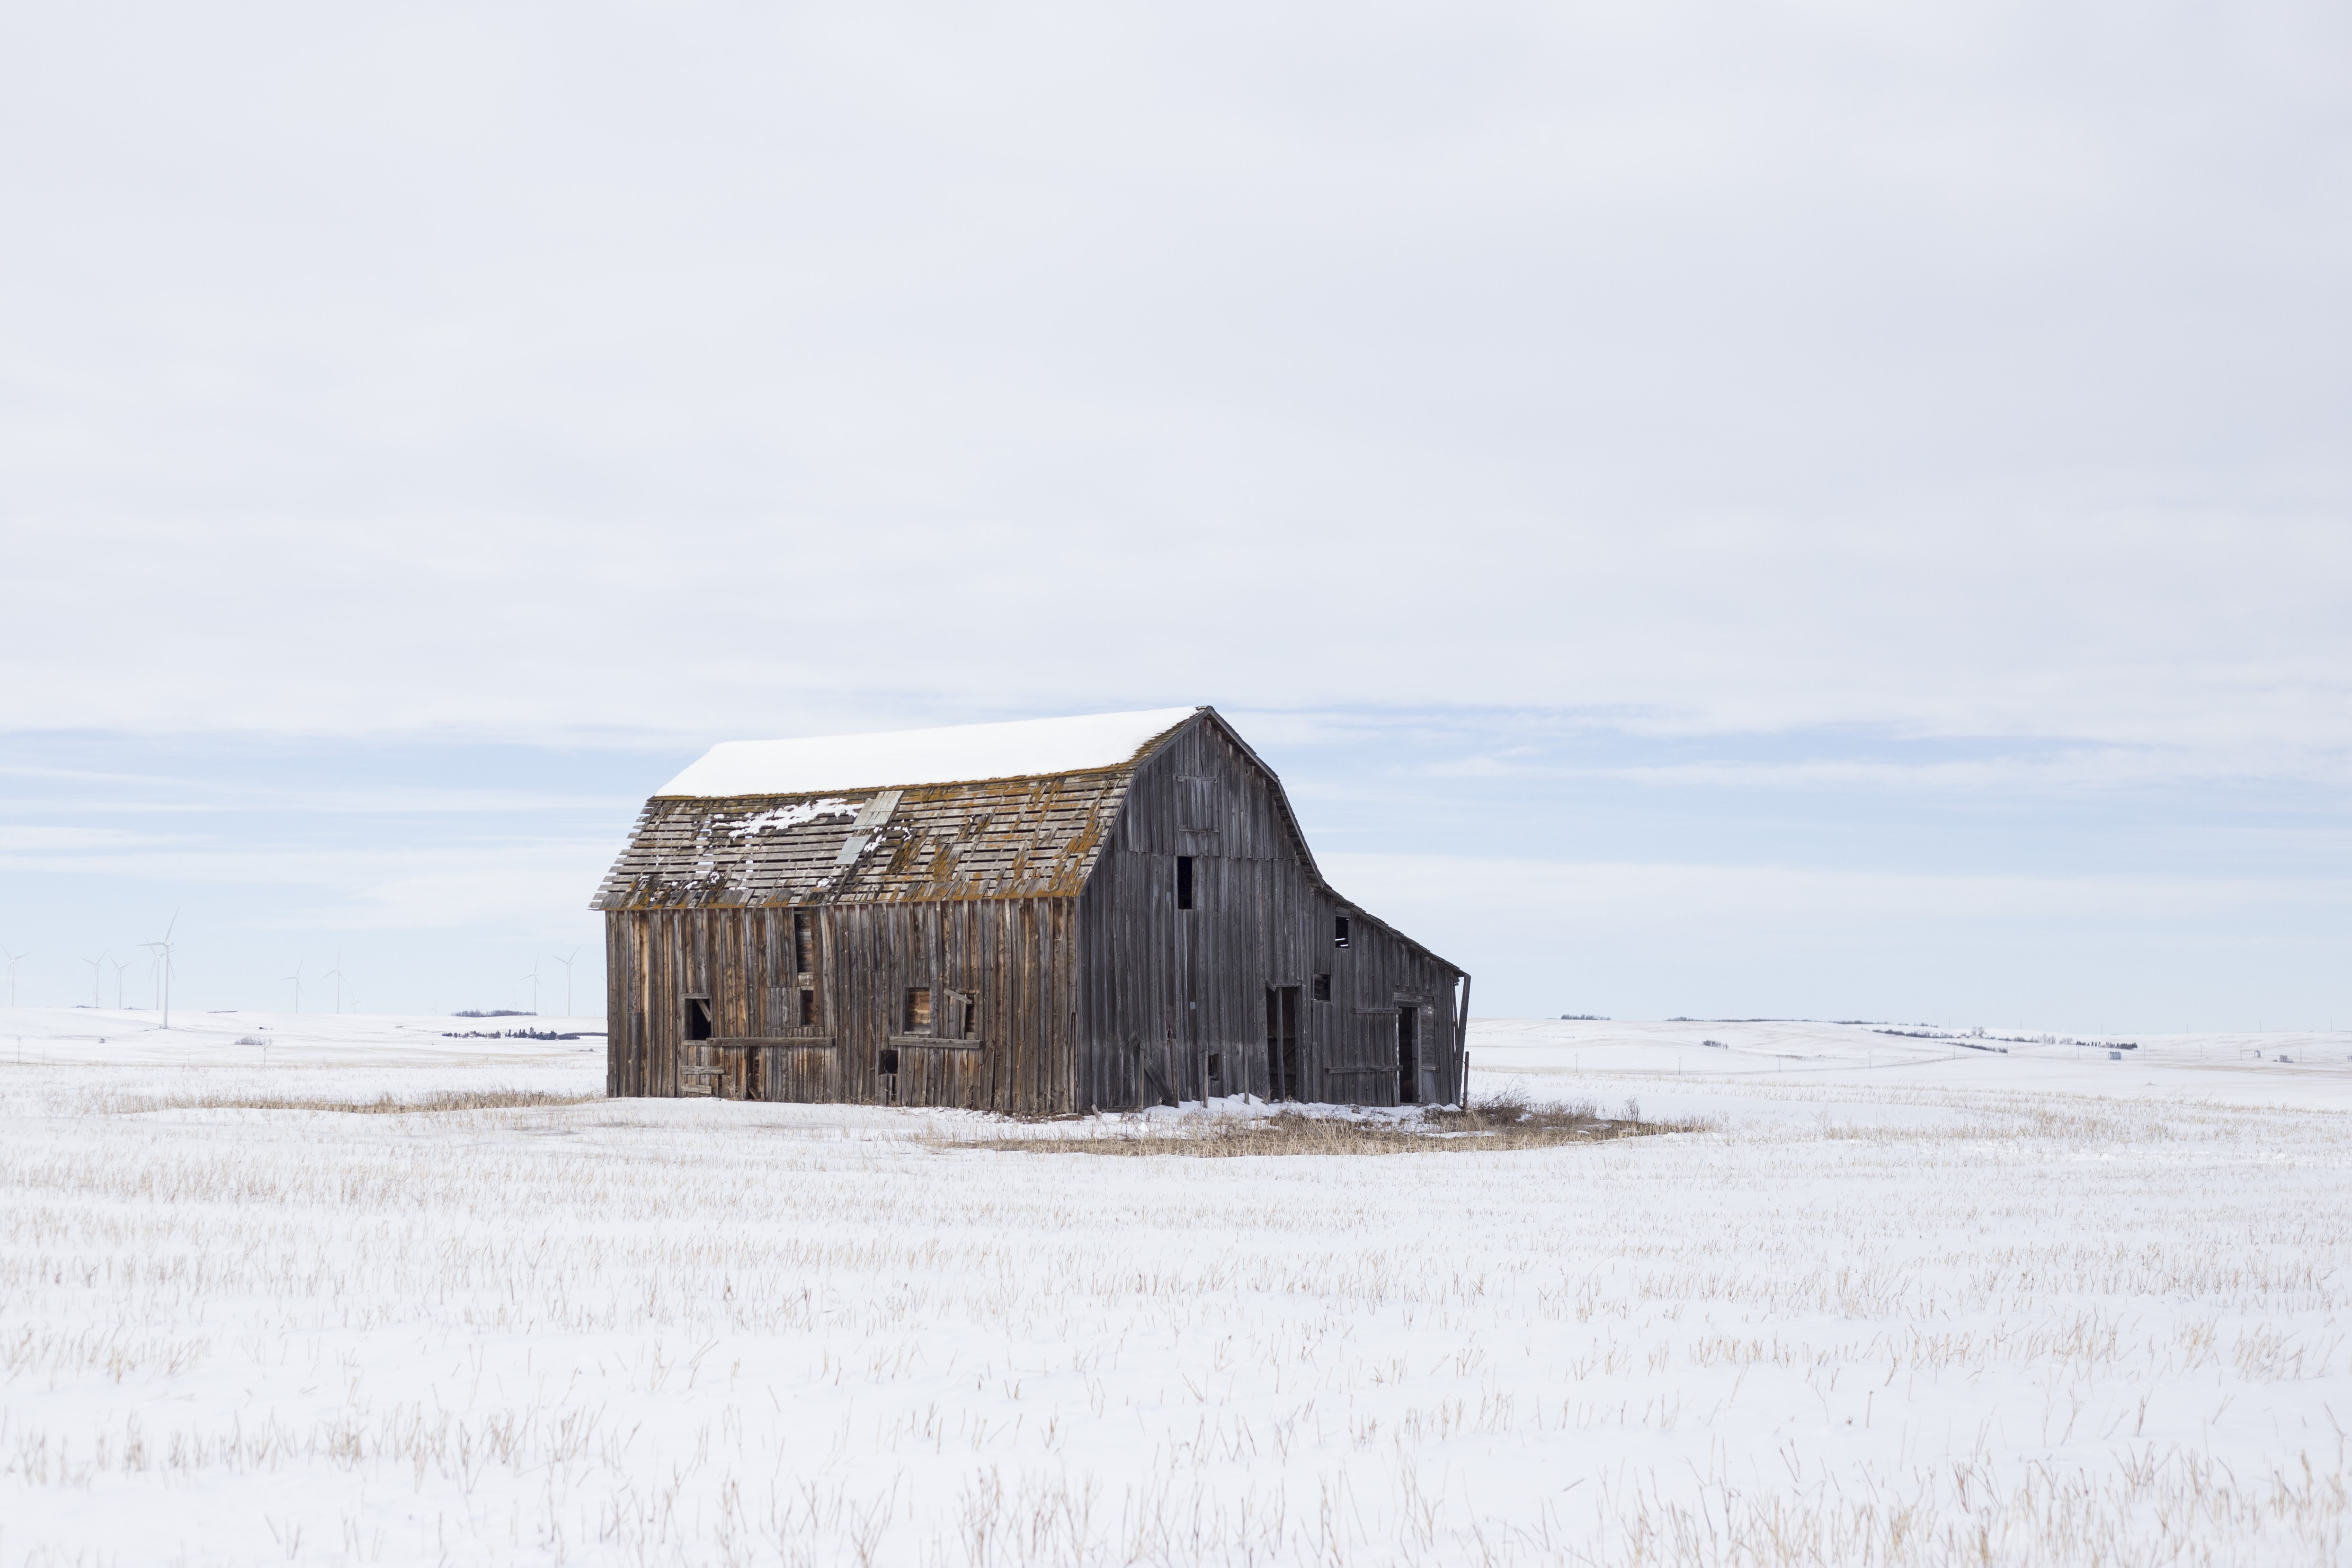 A rustic farm shed sitting in the middle of snow covered farm field under a cloudy sky